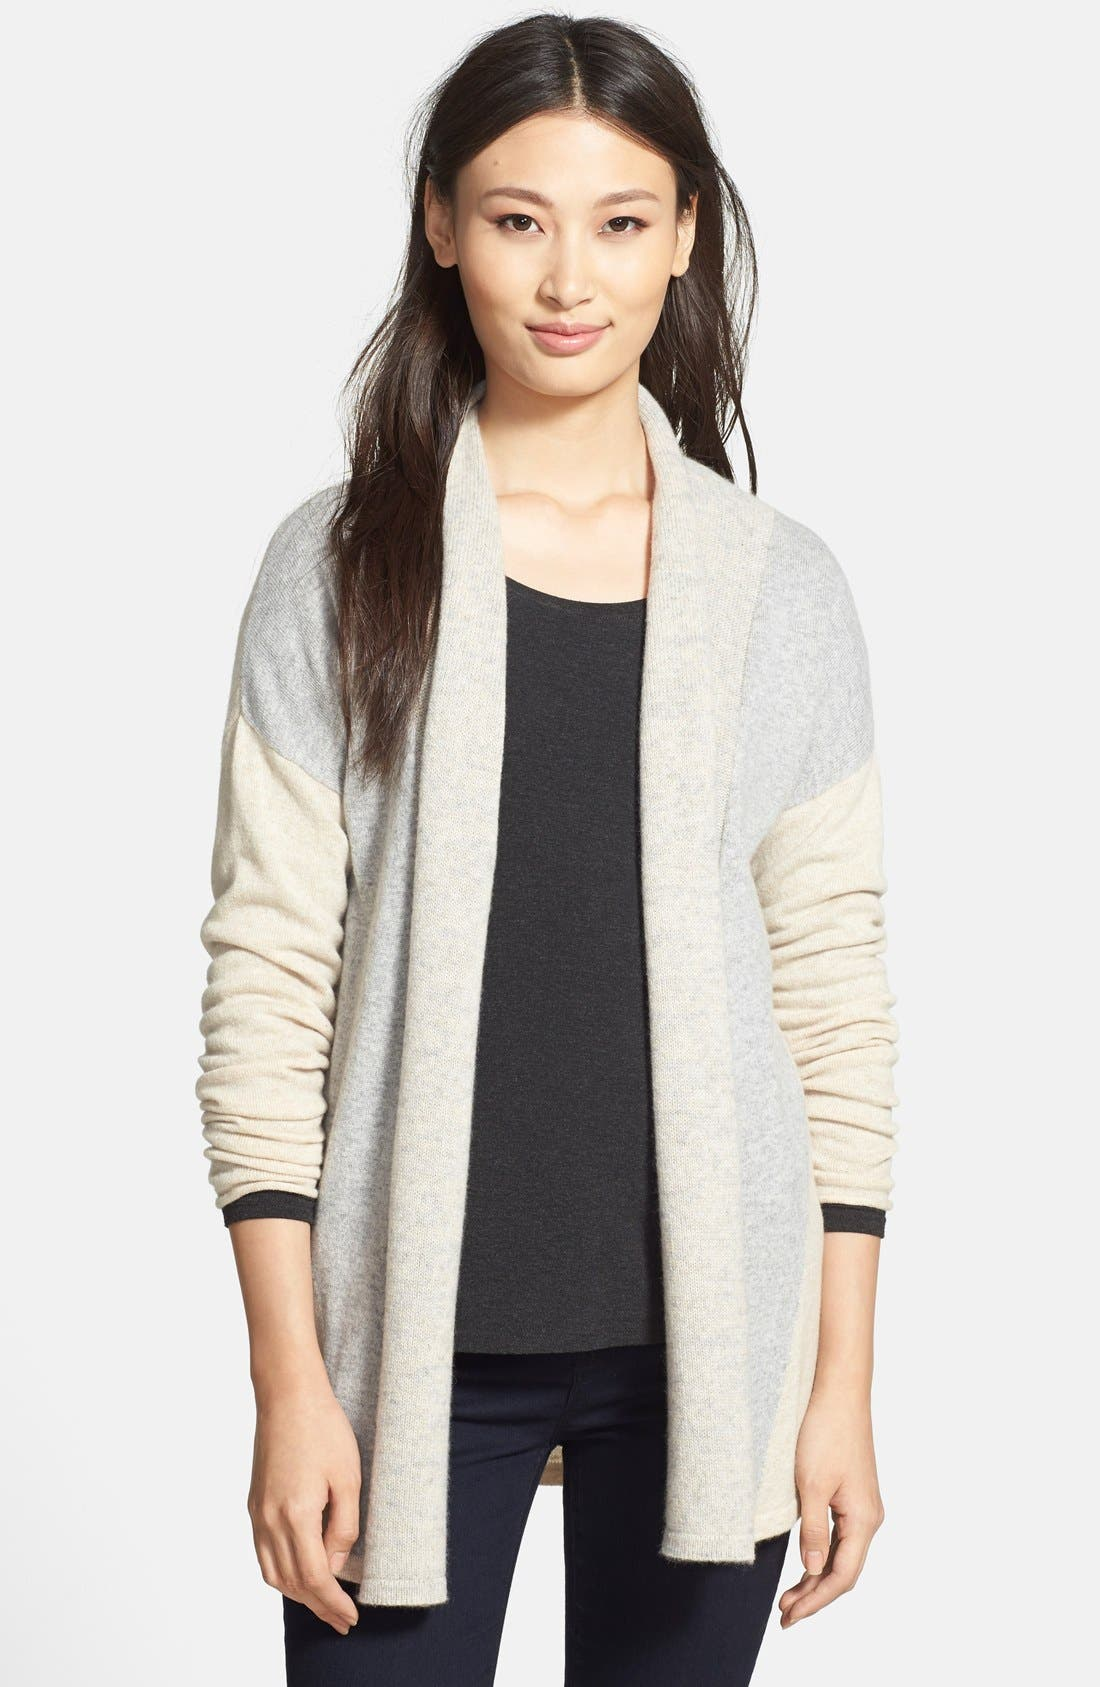 Main Image - Griffen Marled Colorblock Cashmere Cardigan